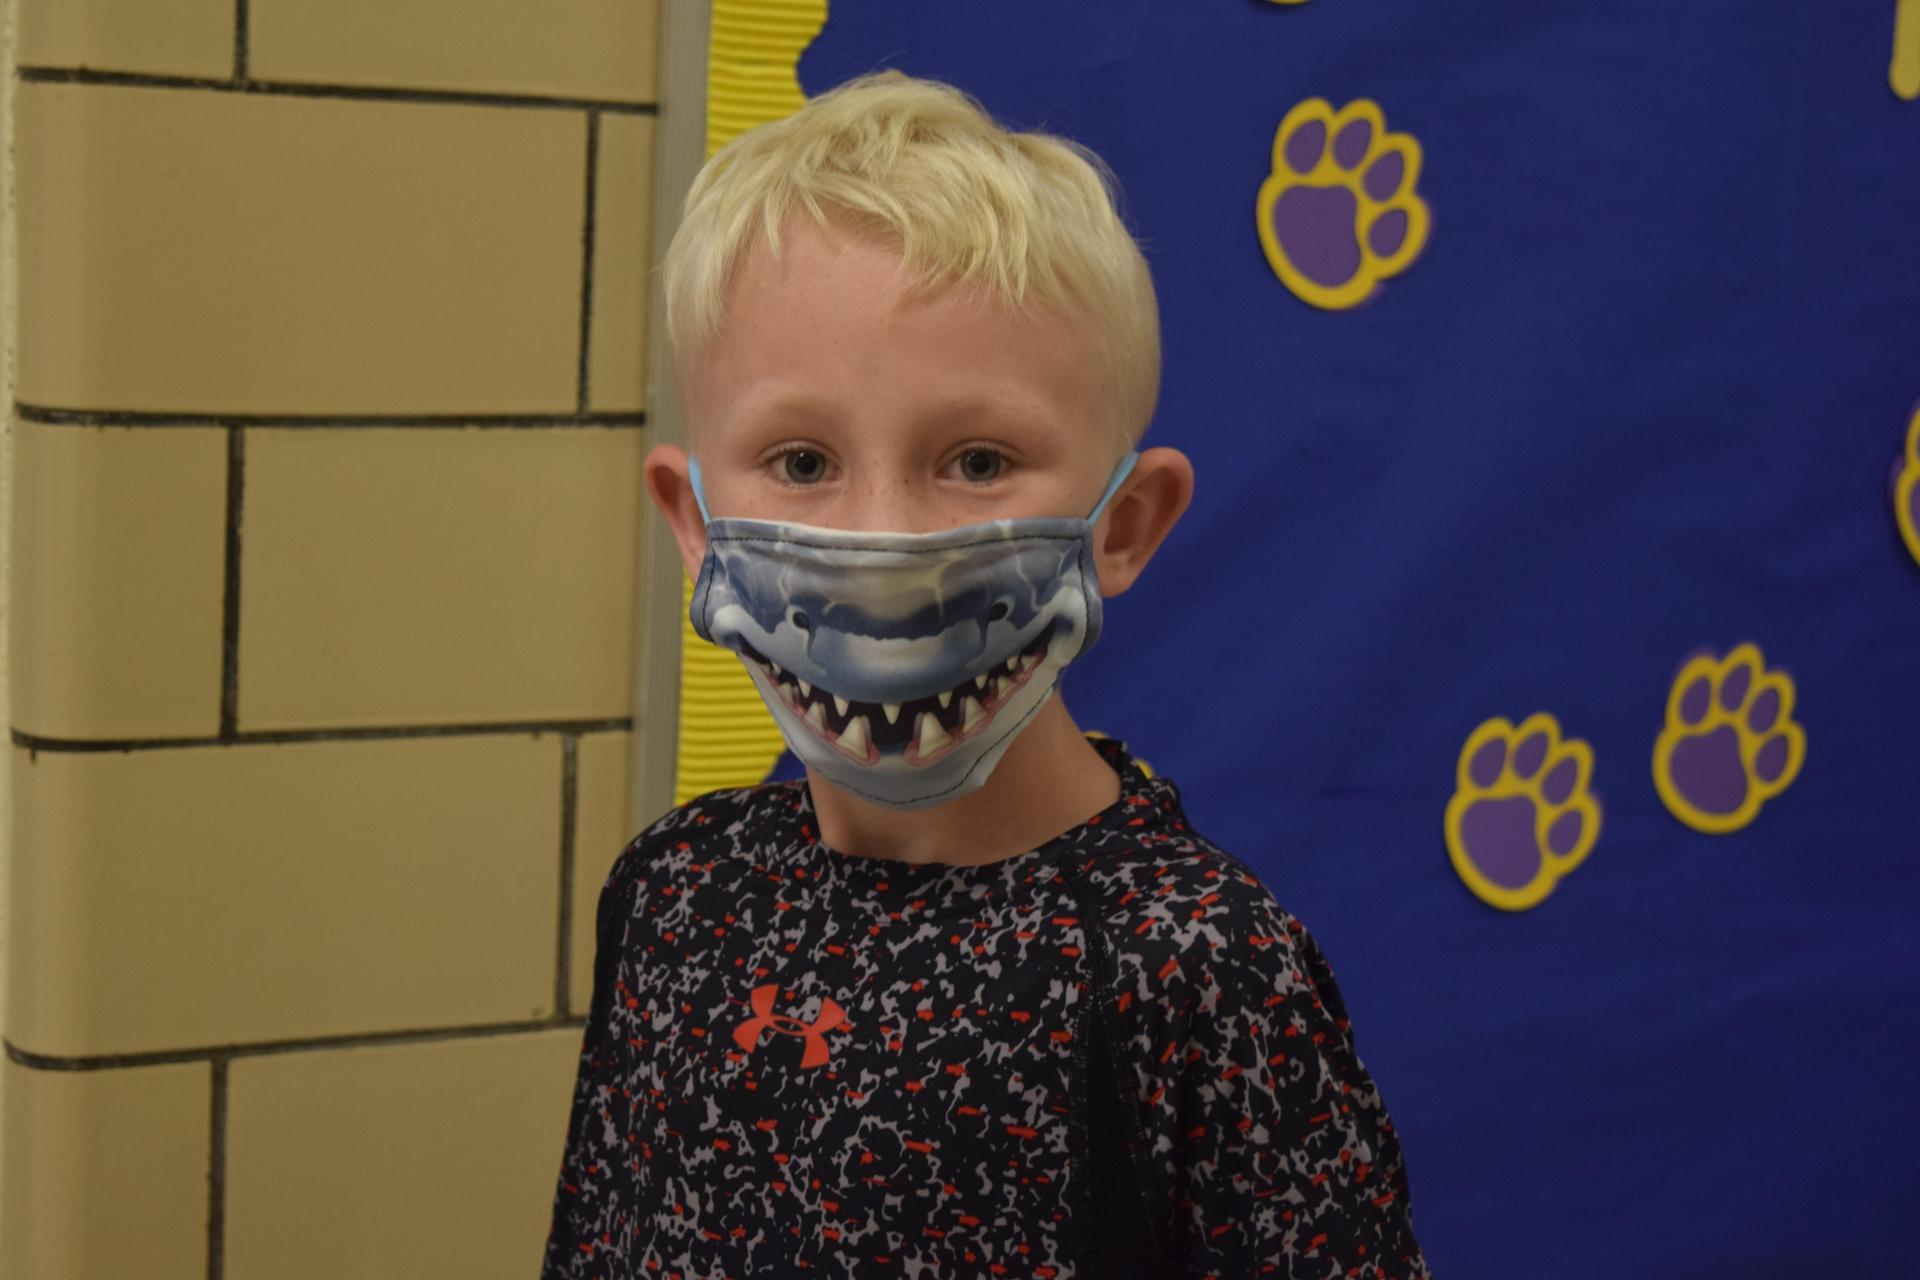 McLaurin Student in Mask